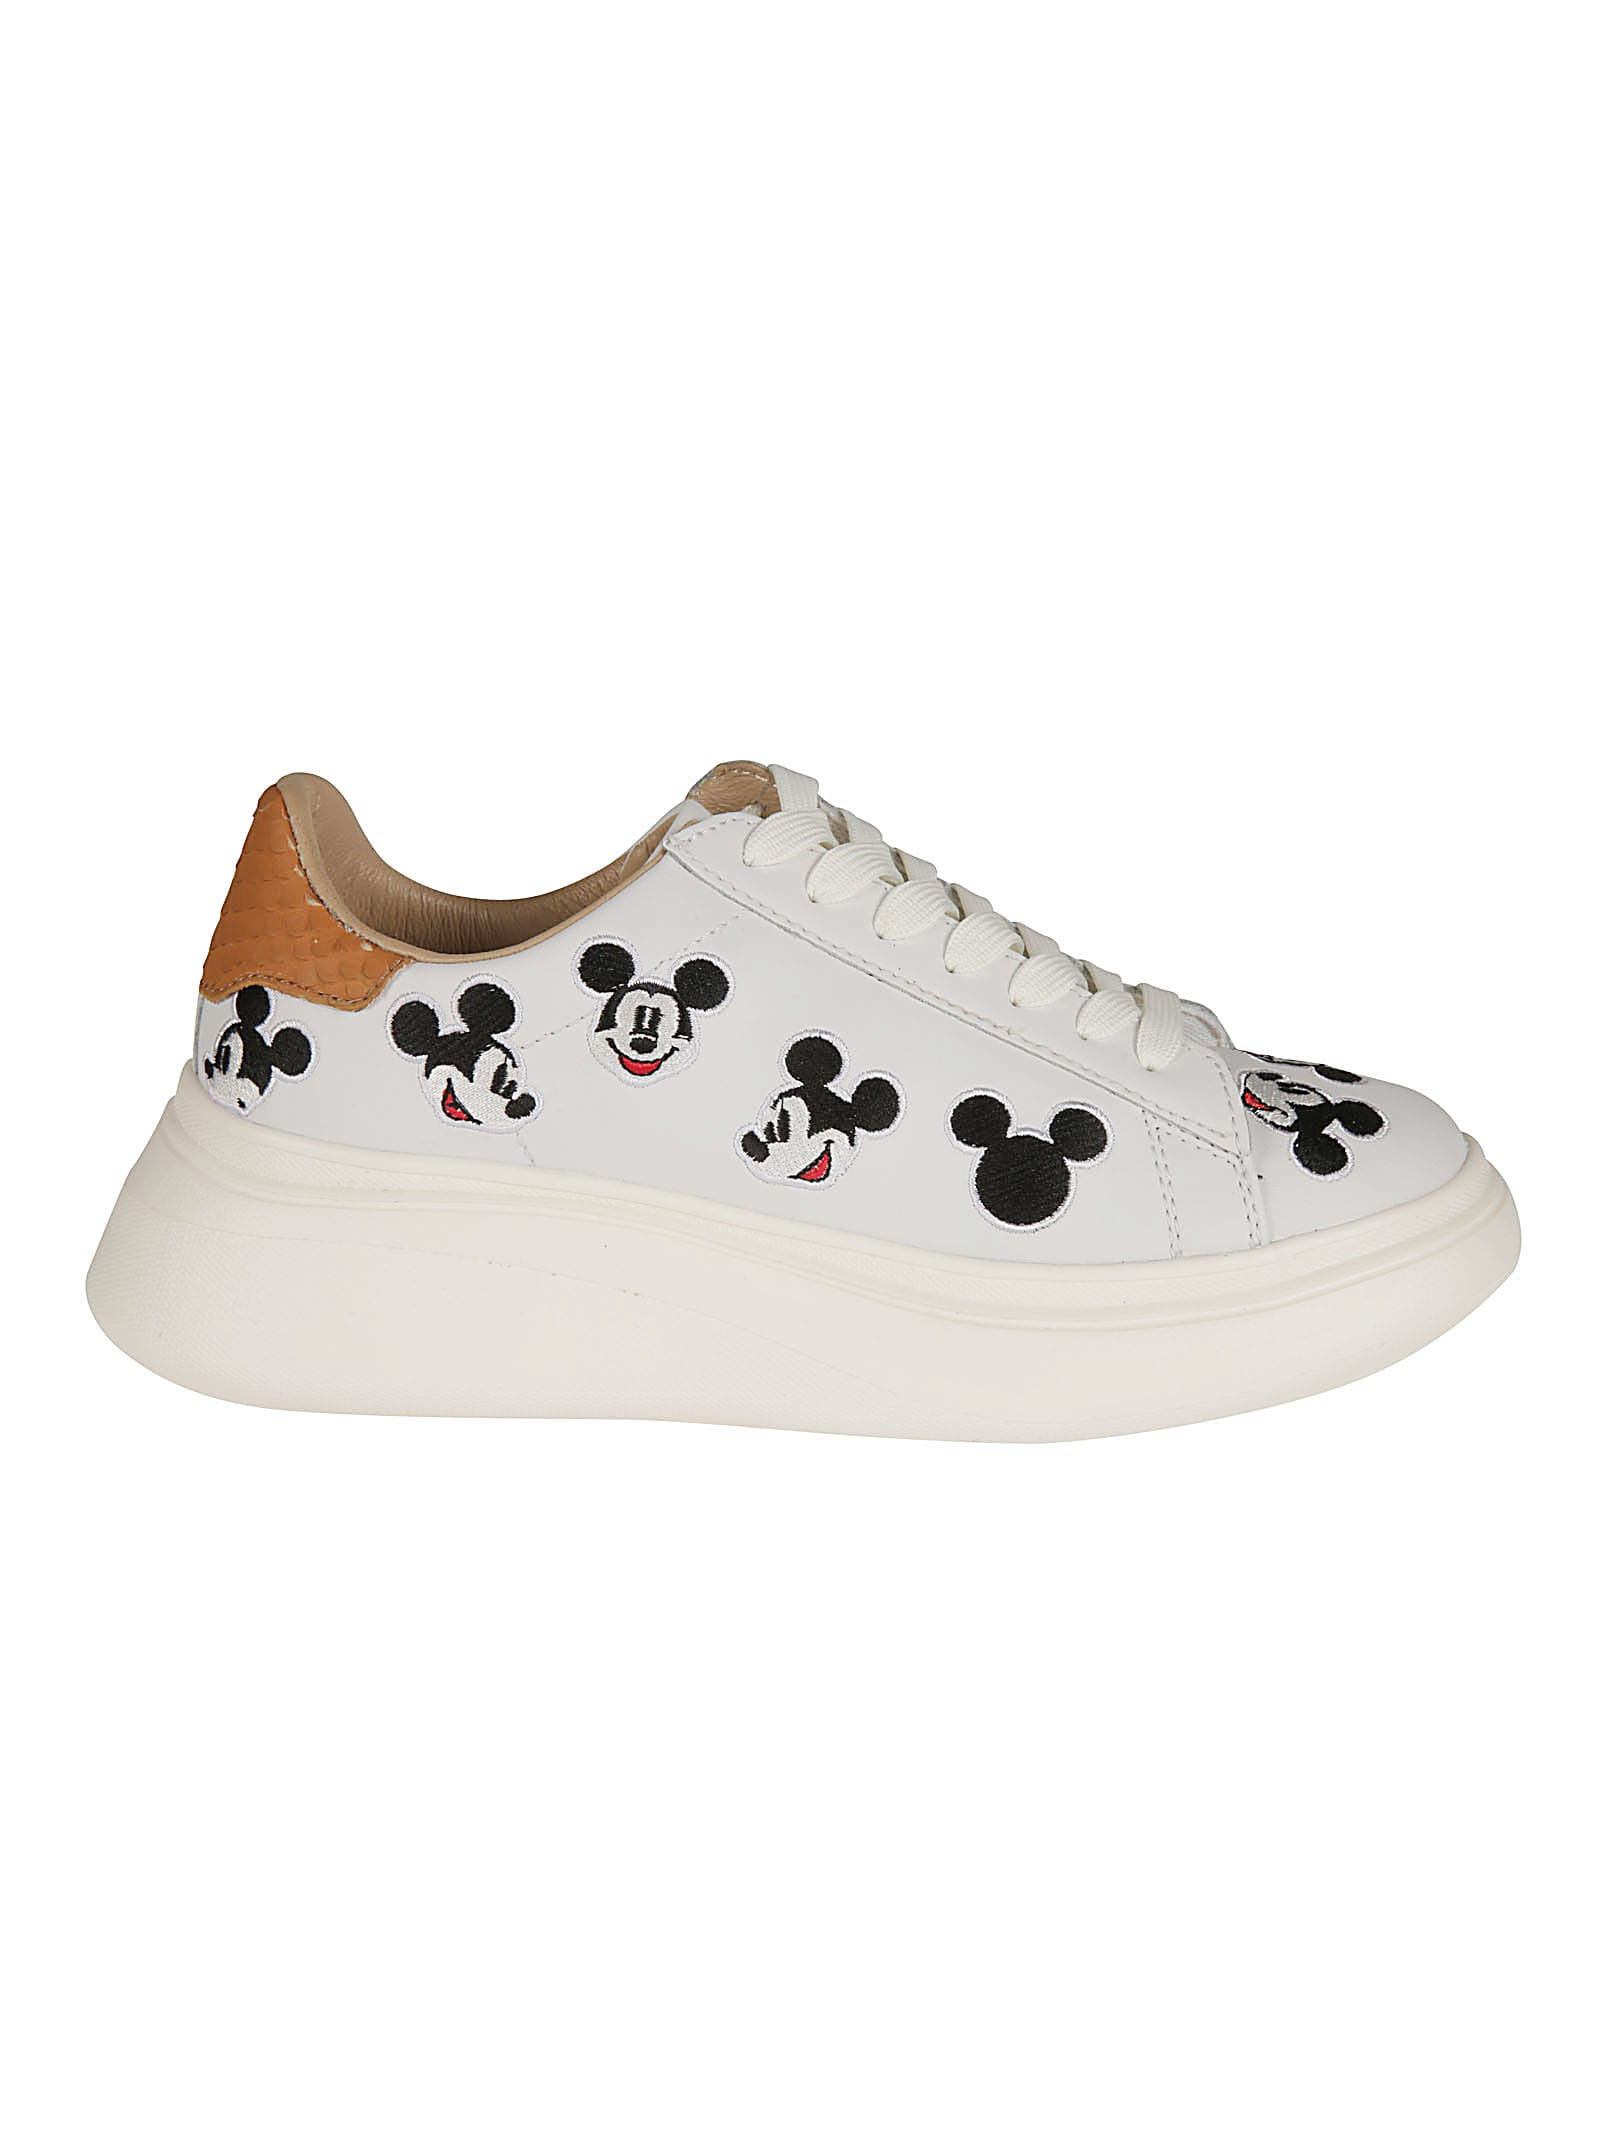 Moa Master Of Arts DOUBLE GALLERY MICKEY SNEAKERS